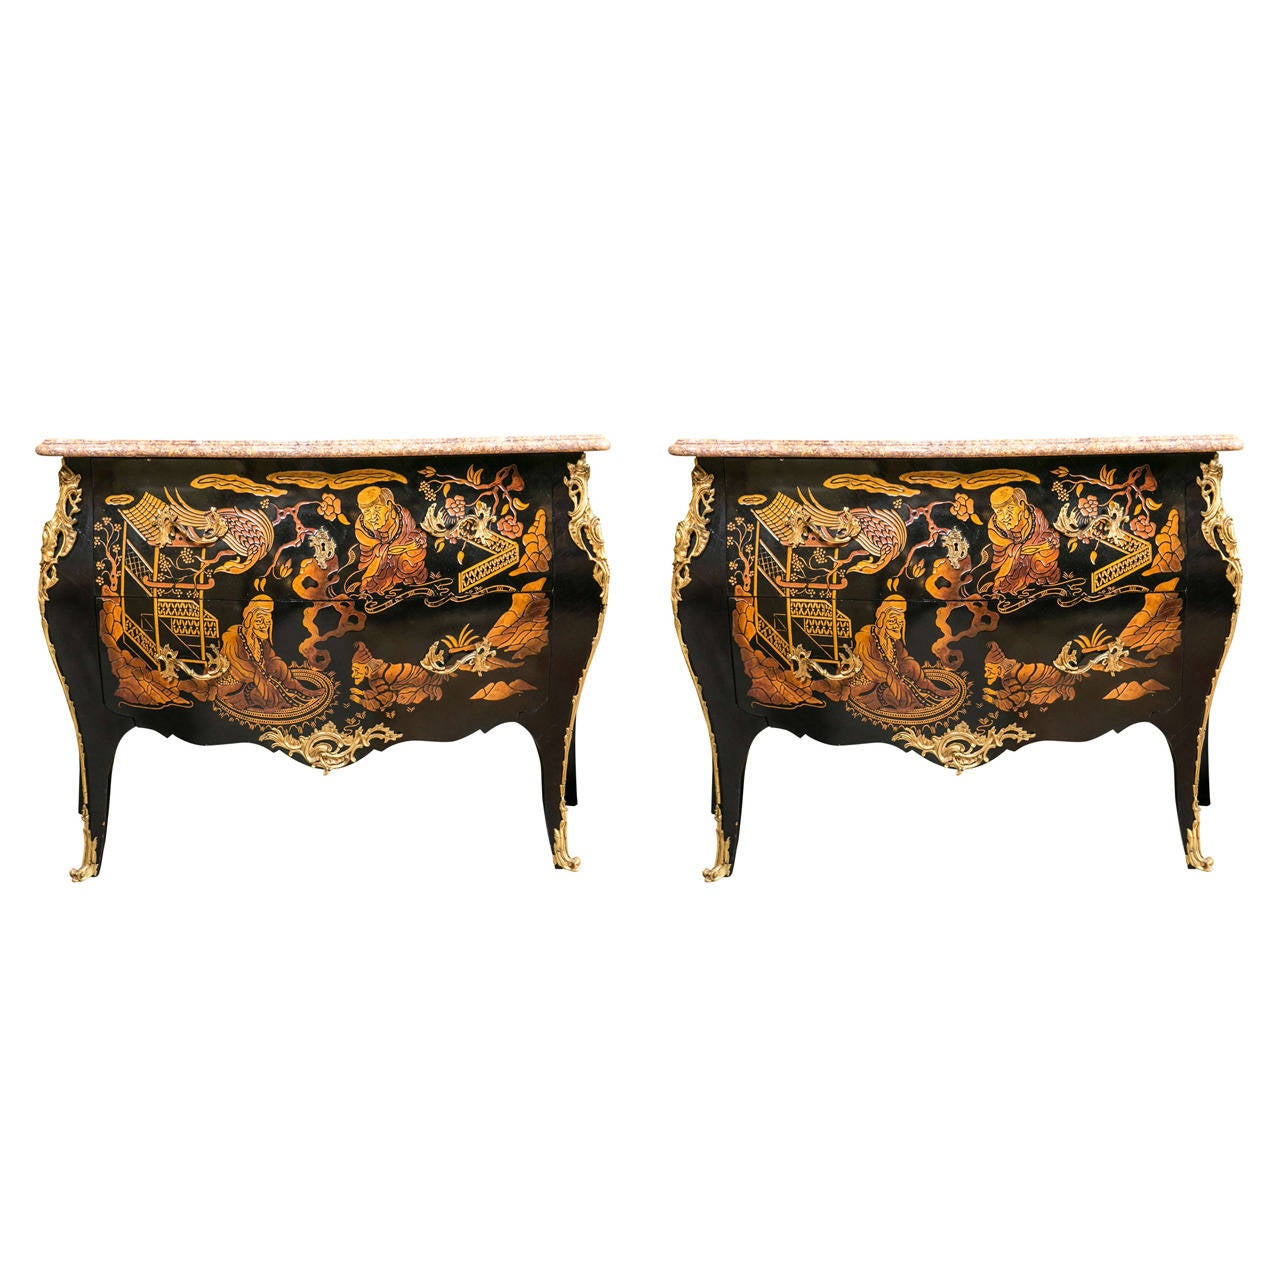 Pair of Marble-Top Chinoiserie Bronze-Mounted Commodes / Dresser Possibly Jansen